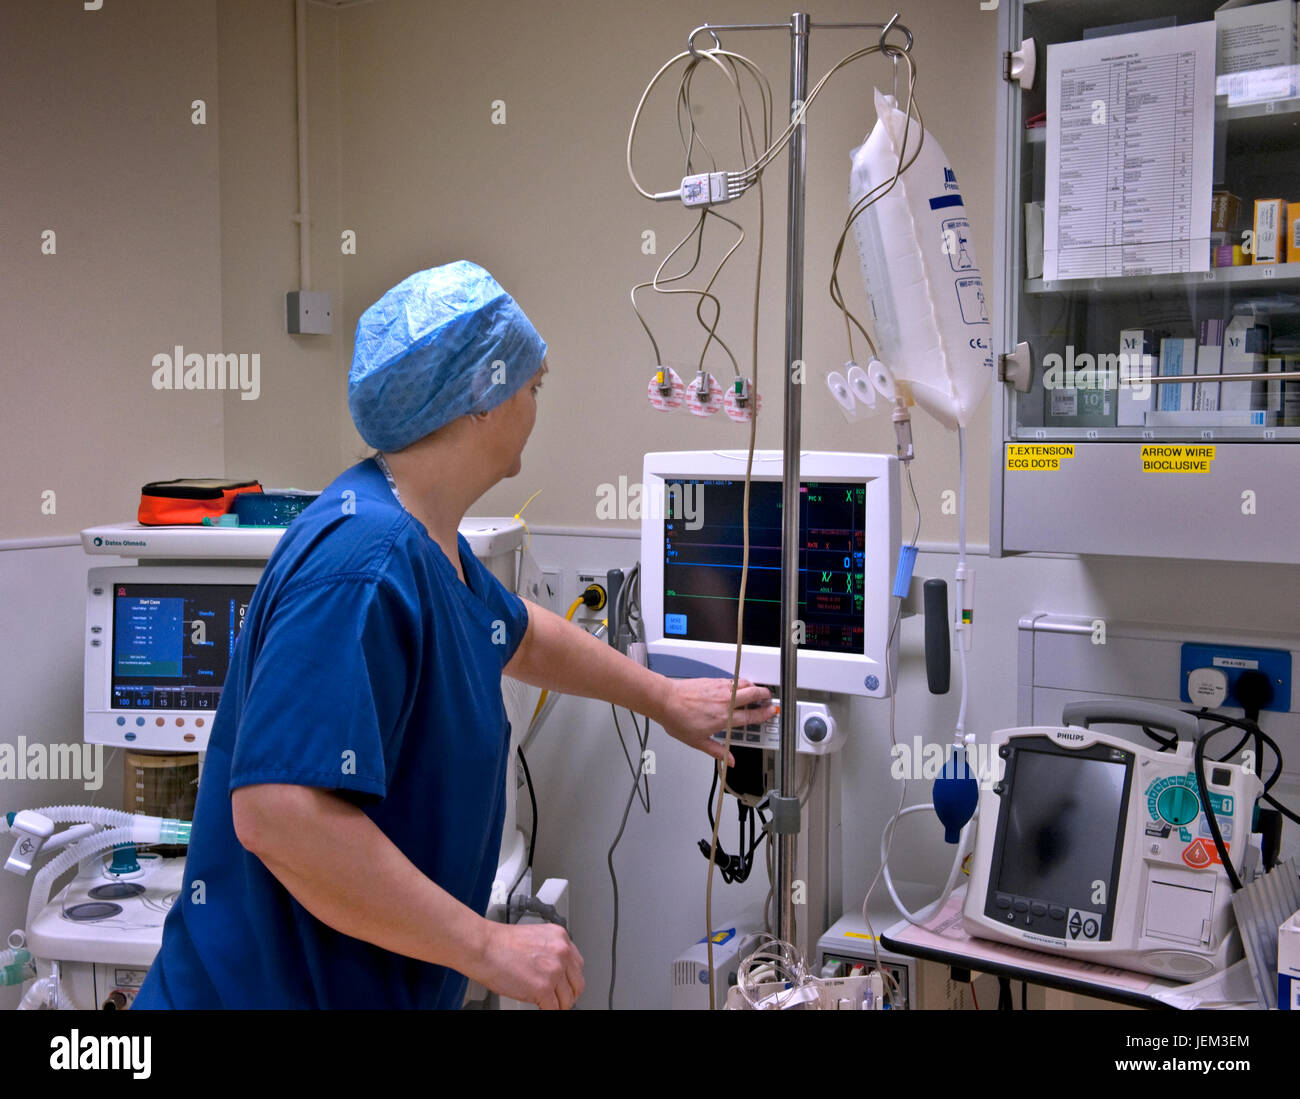 Before a hospital surgical session, an ODP anaesthetics practitioner prepares and checks correct functioning an - Stock Image